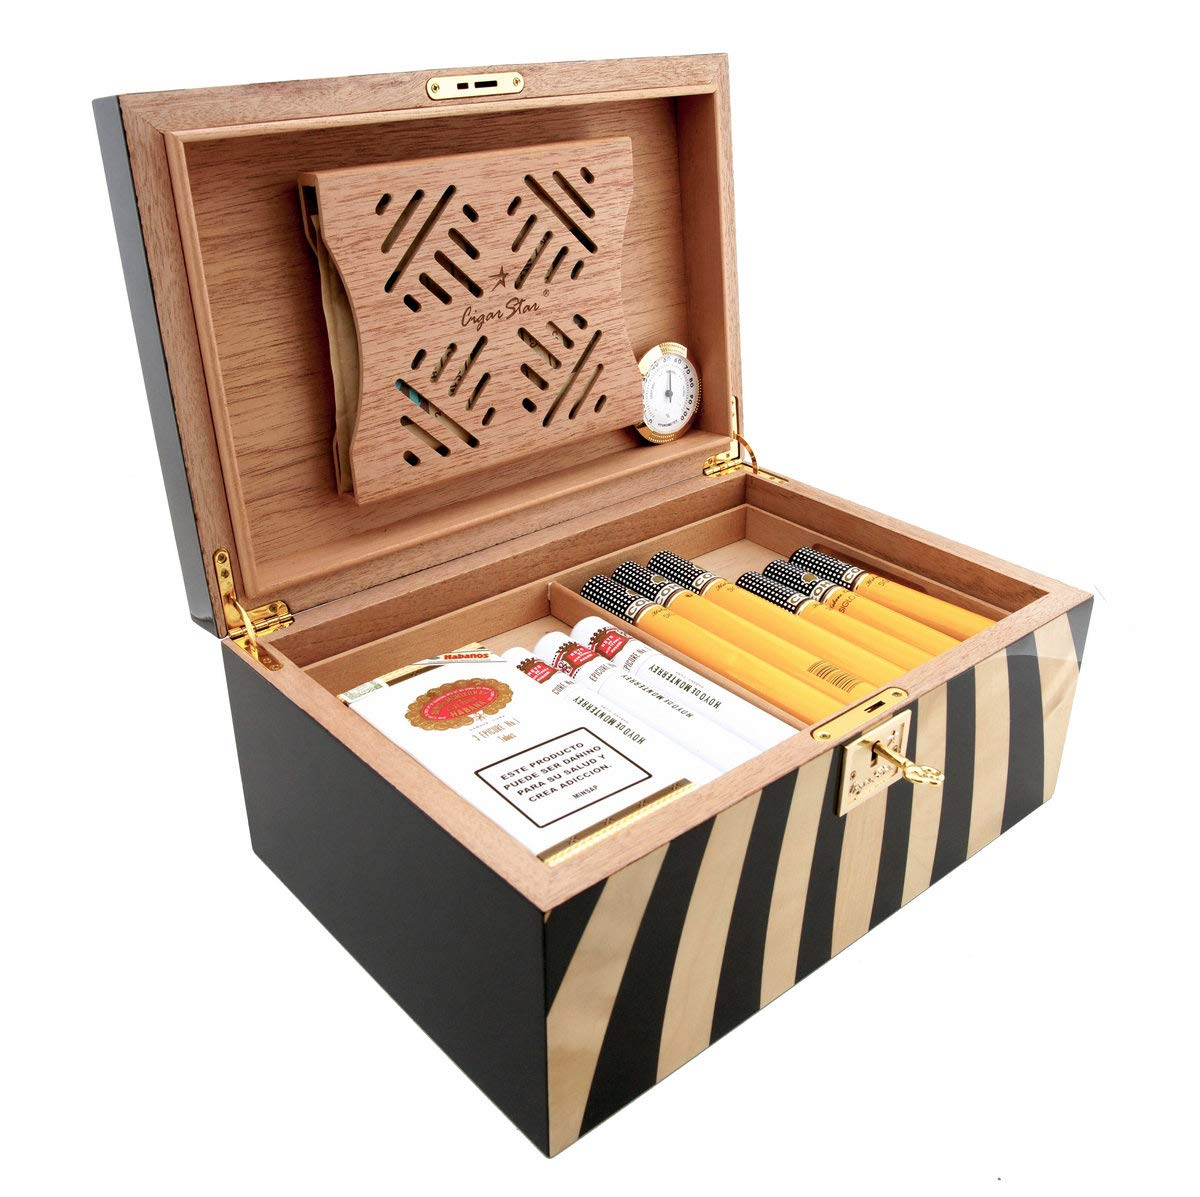 Cigar Star Boketto Humidor Limited Edition Optical Illusion Made from Wood! by Cigar Star (Image #7)